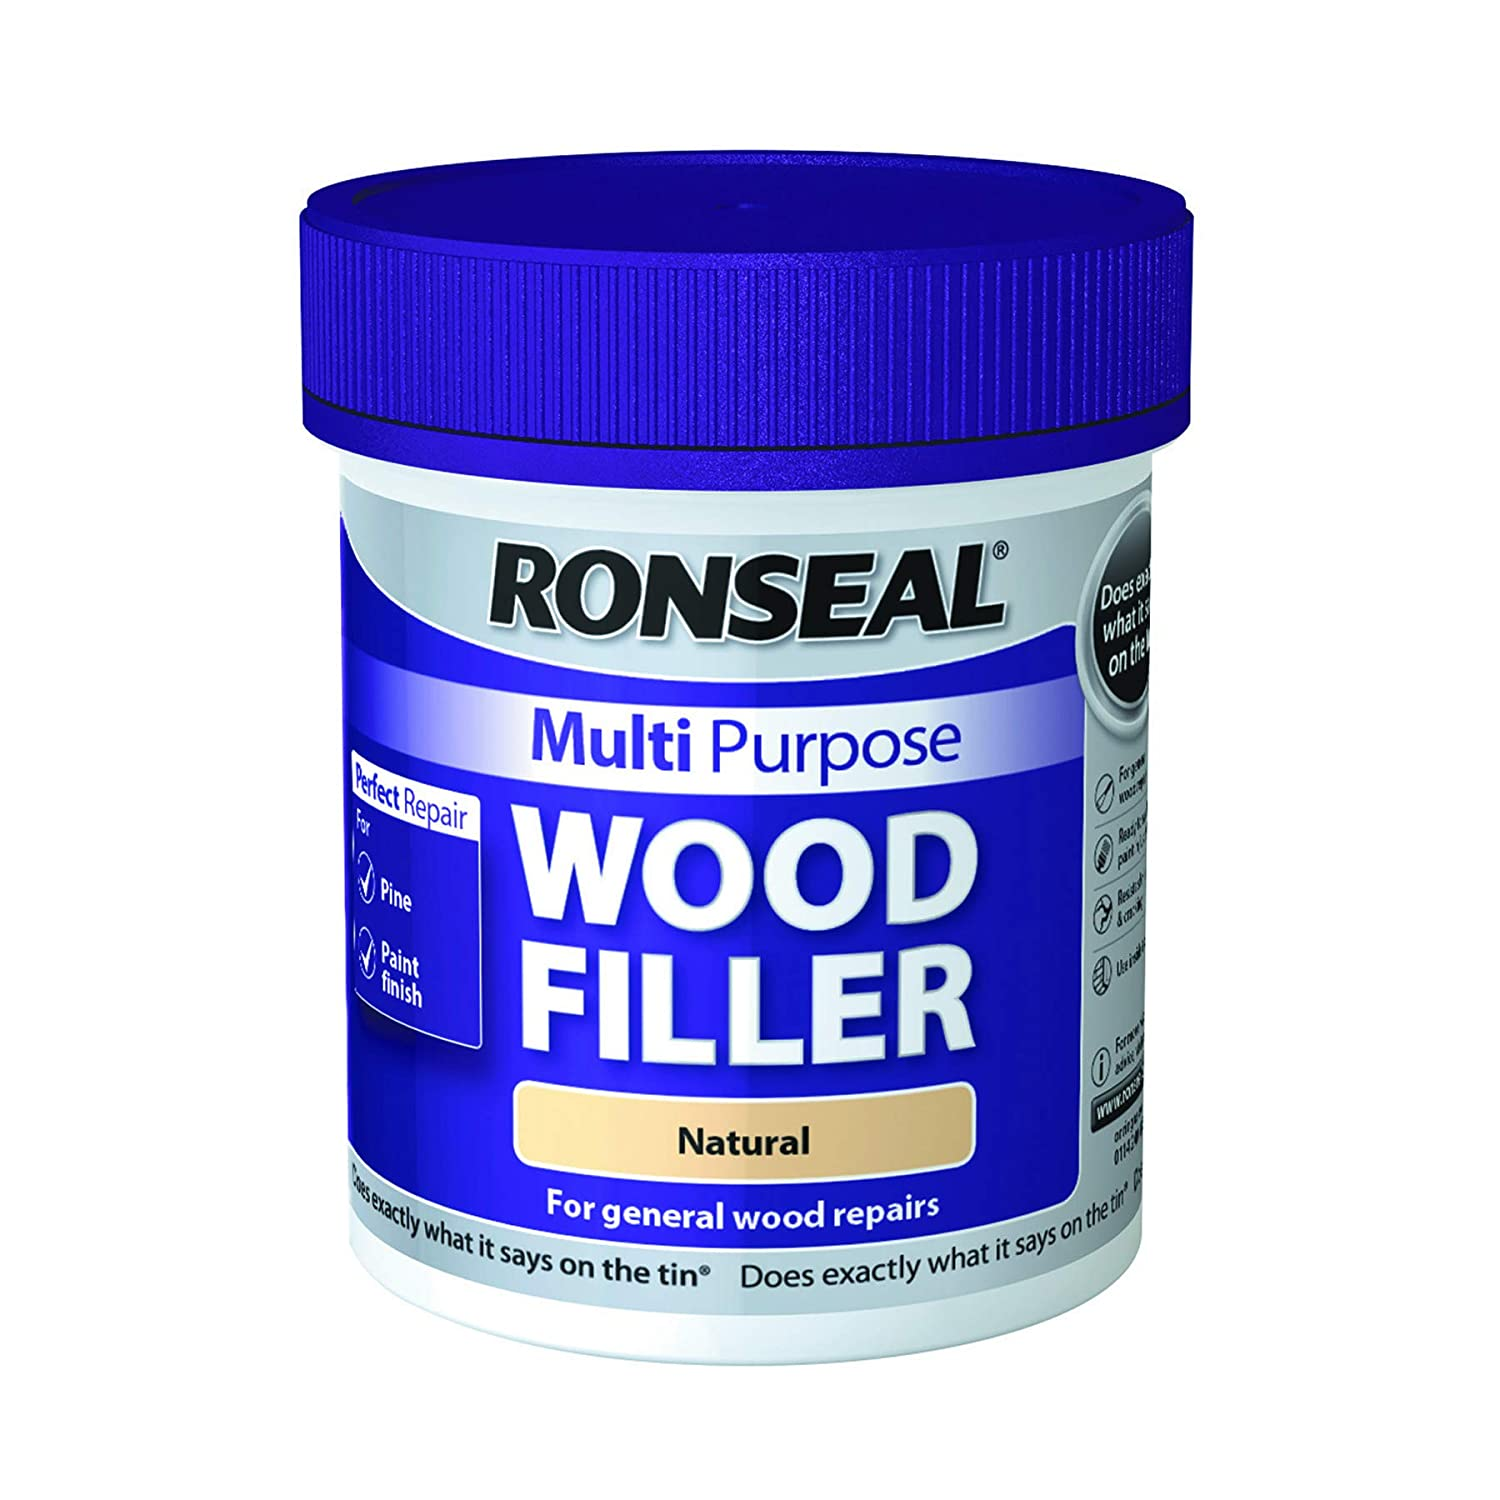 Ronseal Multi-Purpose Wood Filler - Natural 250g RSLMPWFN250G